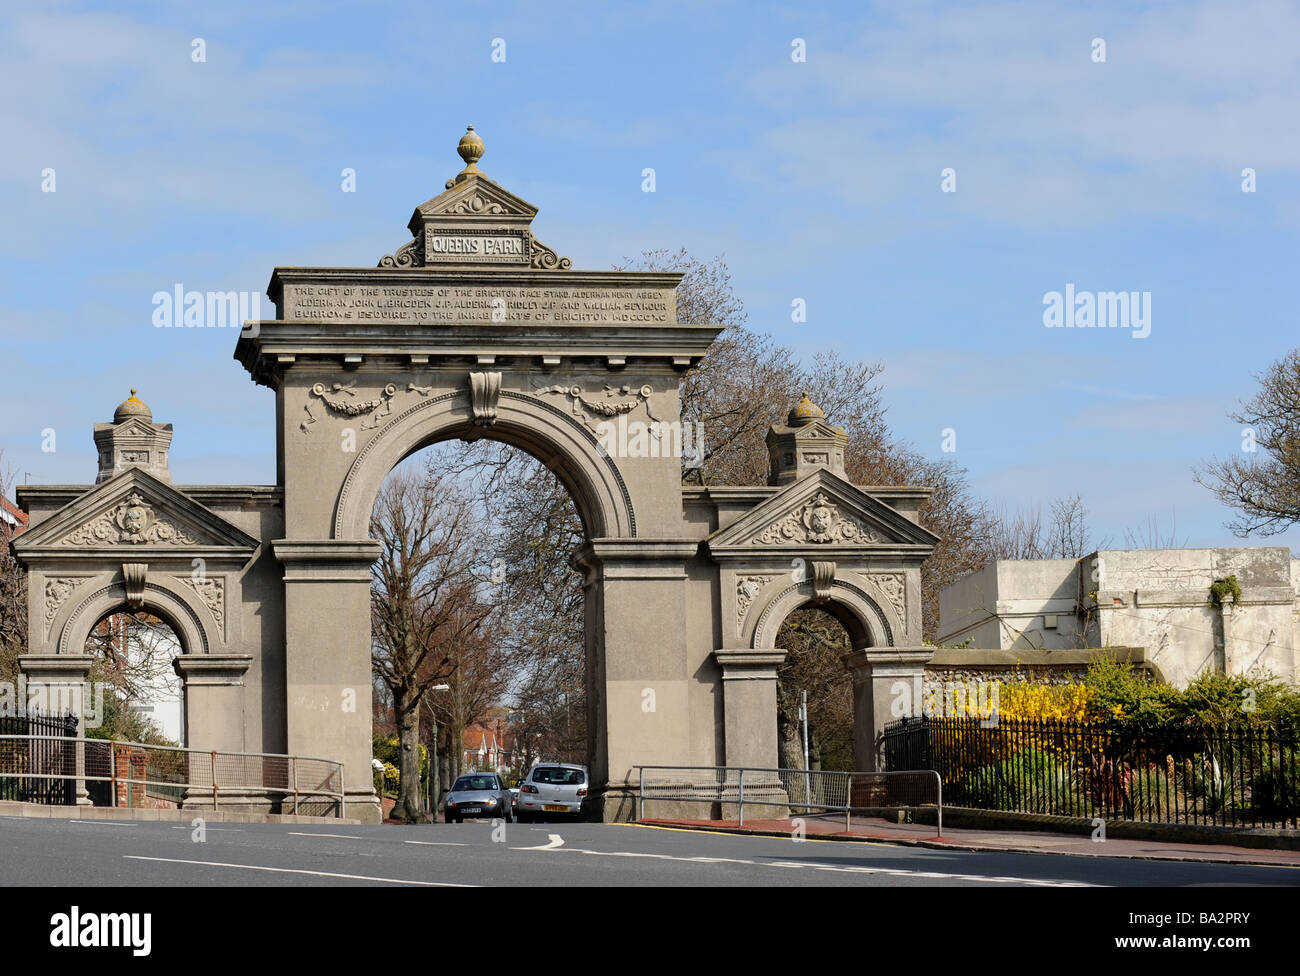 One of the entrances into queen's park in brighton designed by charles barry for william attree - Stock Image